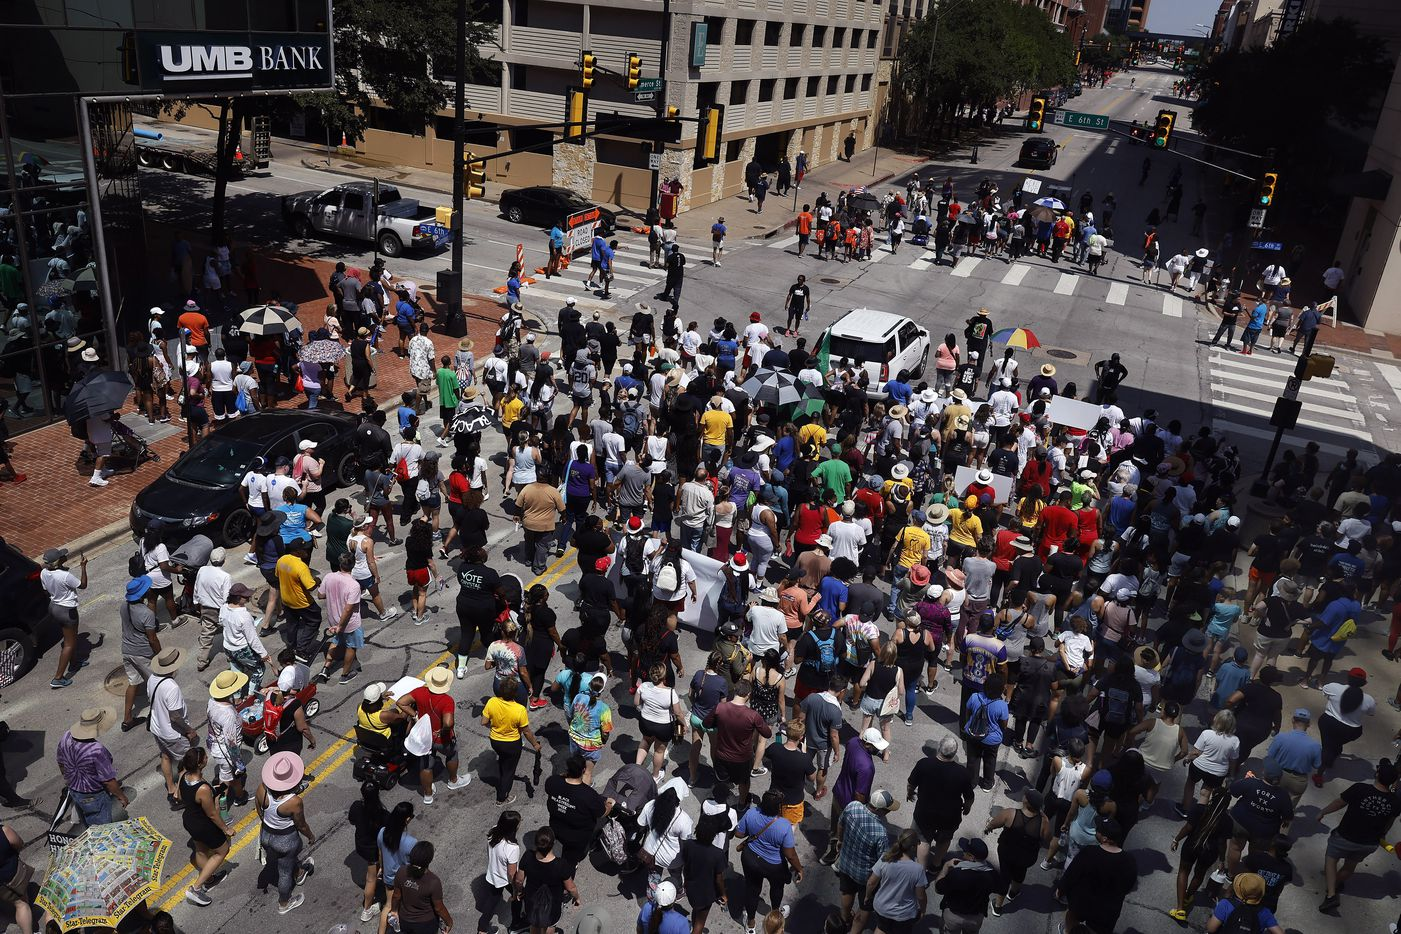 A large group of supporters follow Opal Lee (under umbrellas, top) down Commerce St. during her Juneteenth walk event through downtown Fort Worth, Saturday morning, June 19, 2021.